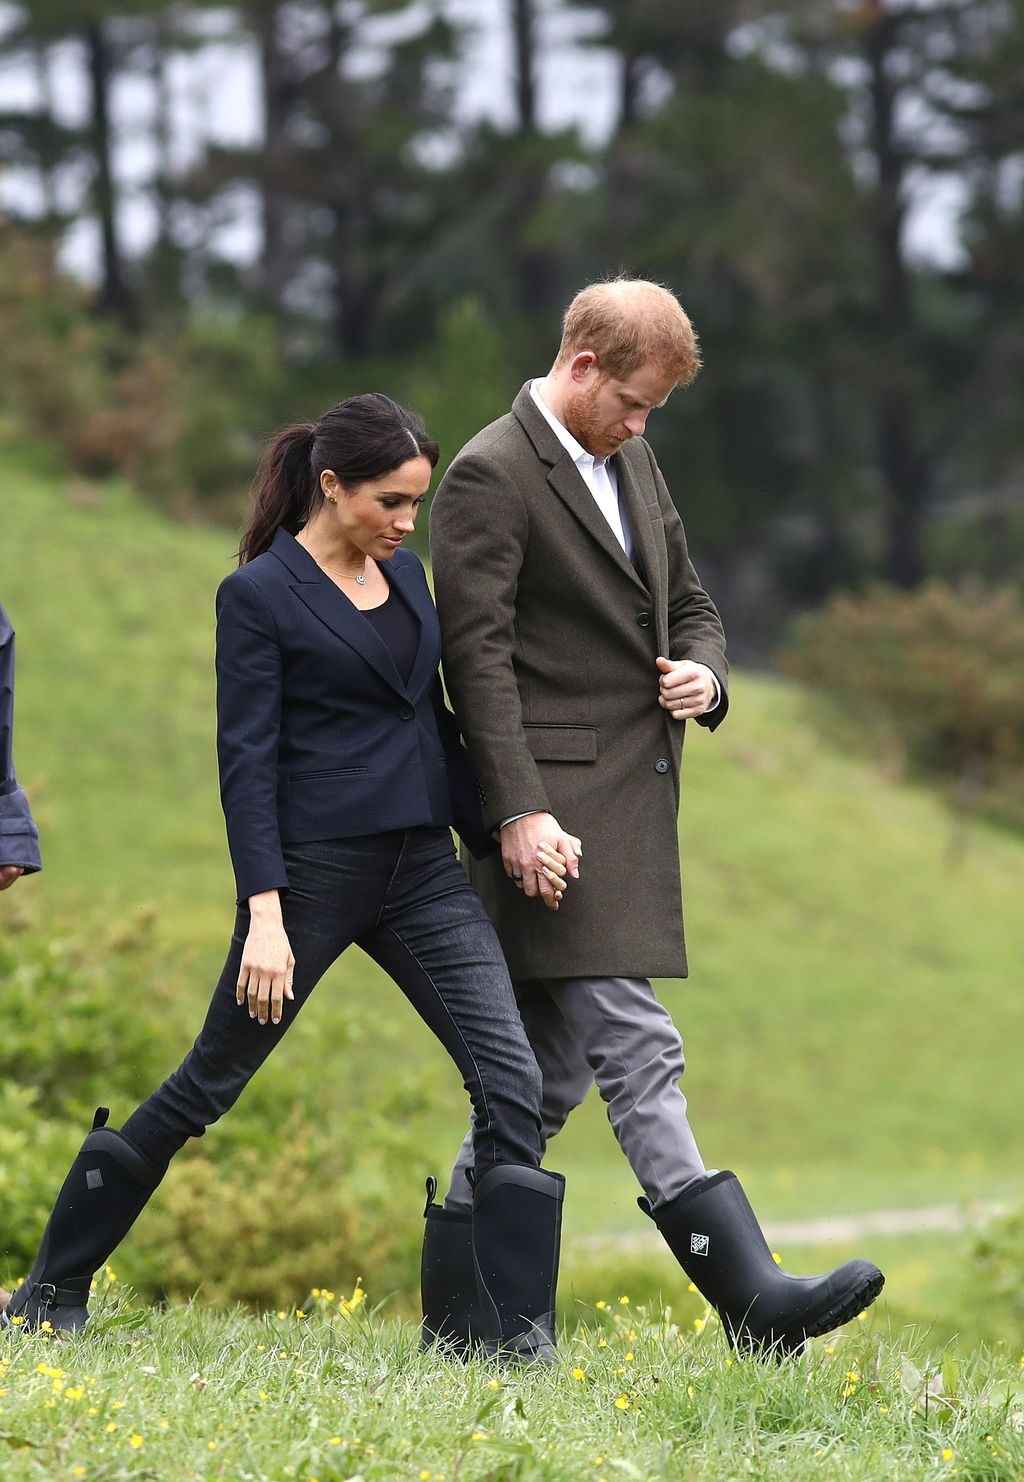 AUCKLAND, NEW ZEALAND - OCTOBER 30: Prince Harry, Duke of Sussex and Meghan, Duchess of Sussex attend the unveiling of The Queen's Commonwealth Canopy in Redvale on October 30, 2018 in Auckland, New Zealand. The Duke and Duchess of Sussex are on their official 16-day Autumn tour visiting cities in Australia, Fiji, Tonga and New Zealand. (Photo by Phil Walter/Getty Images)